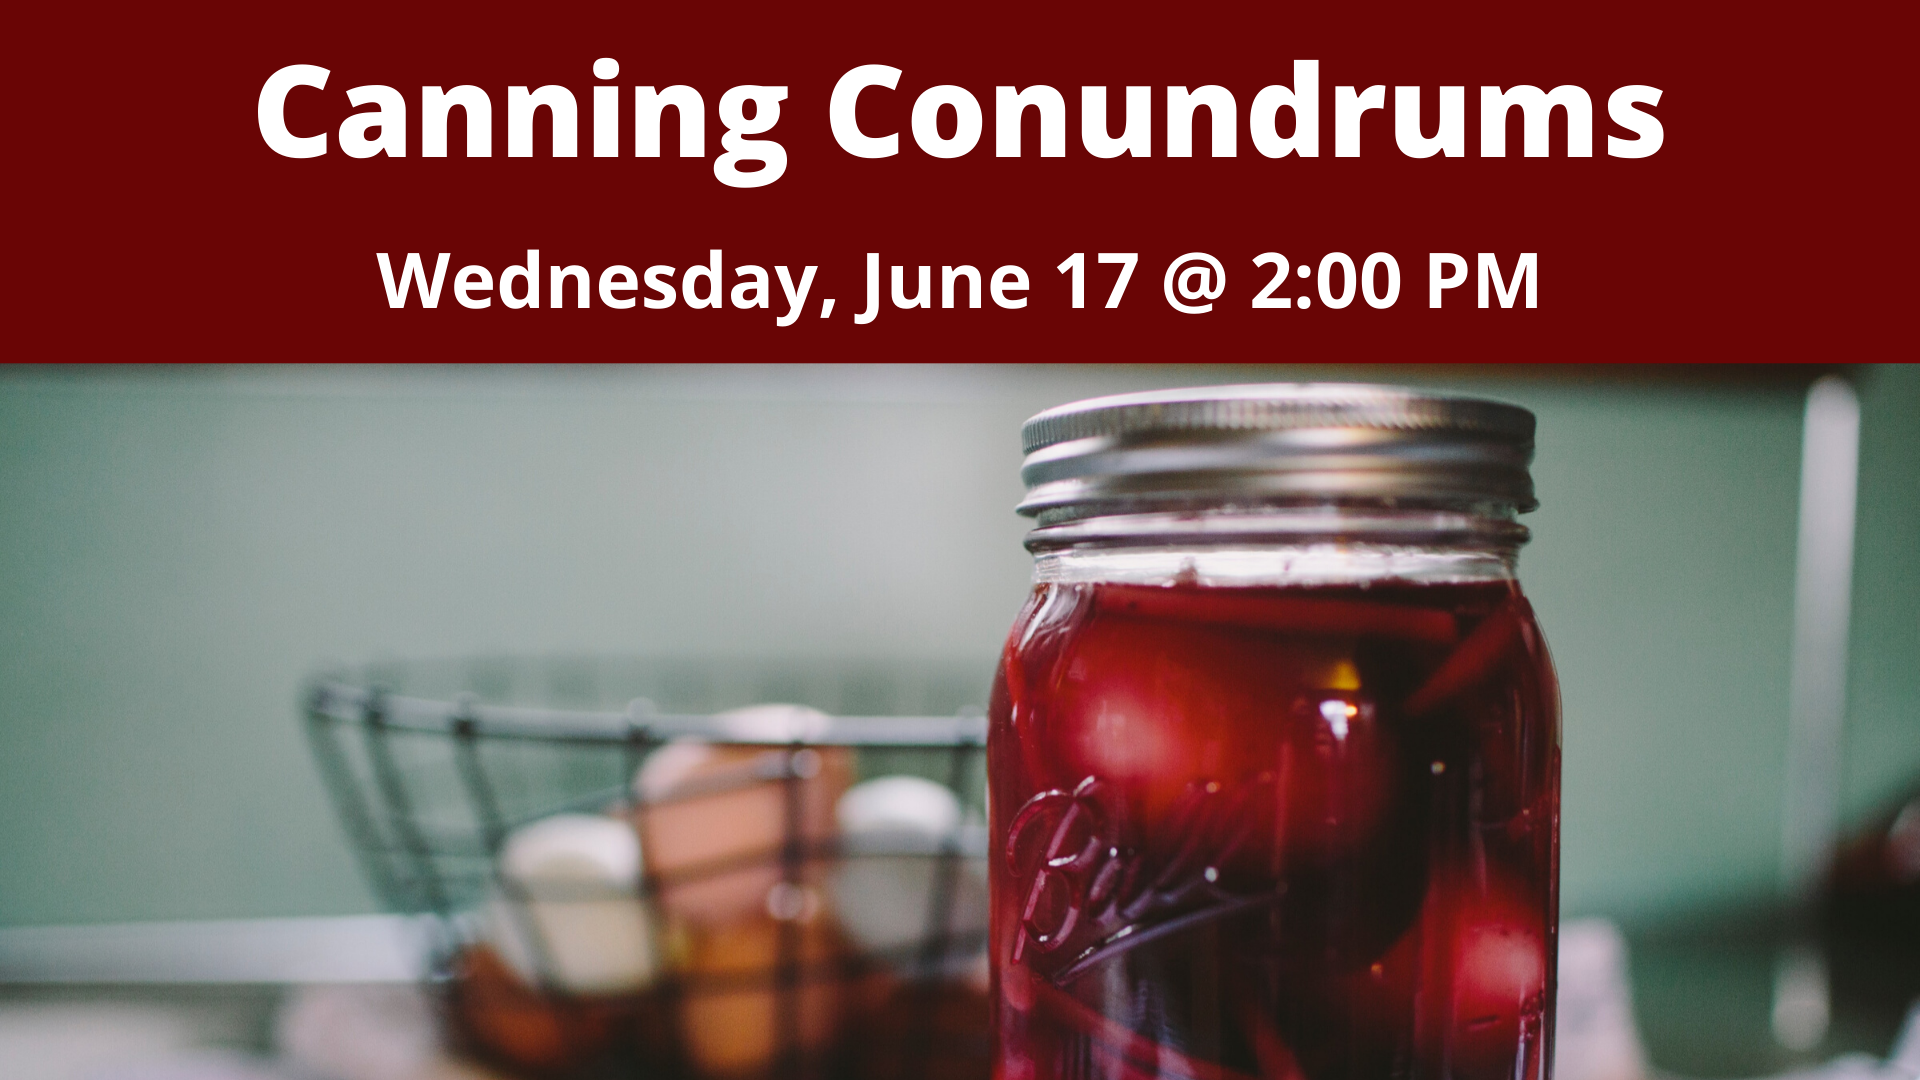 Canning Conundrums